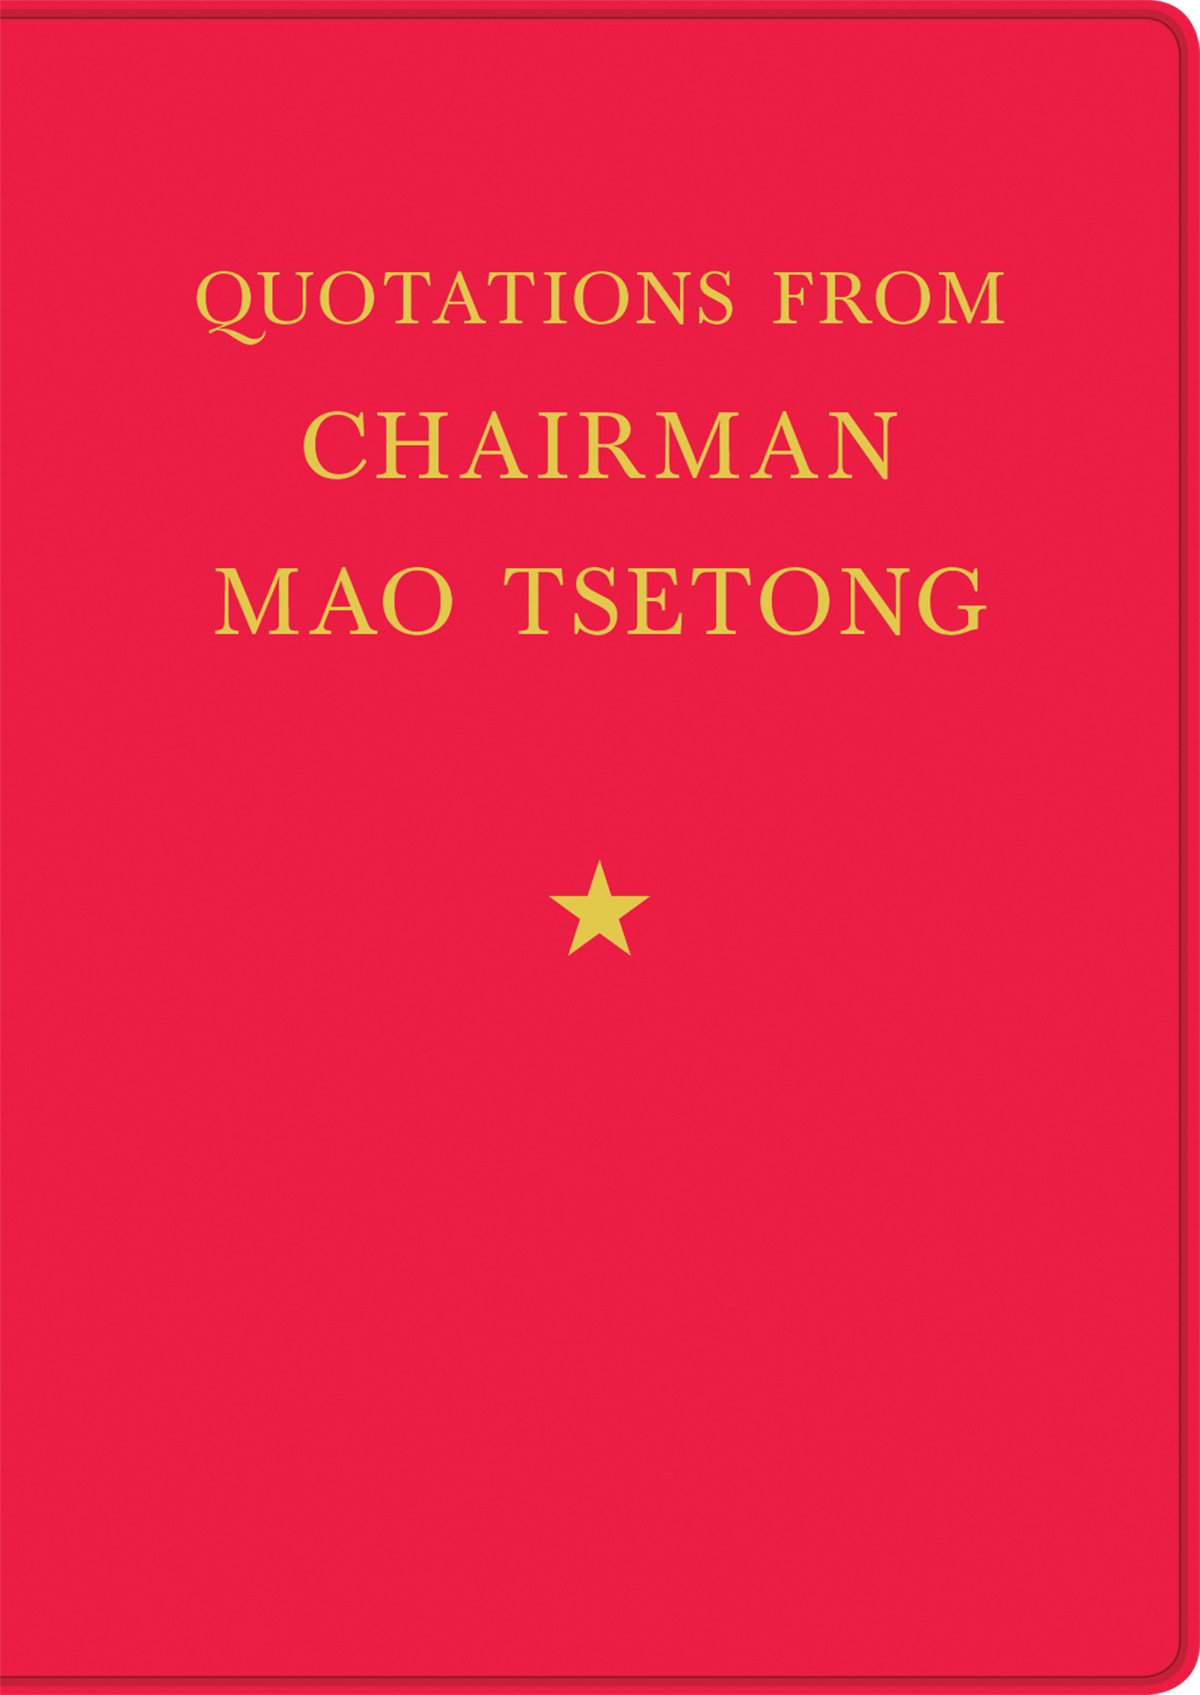 Download Cristina De Middel: Party: Quotations from Chairman Mao Tsetong pdf epub